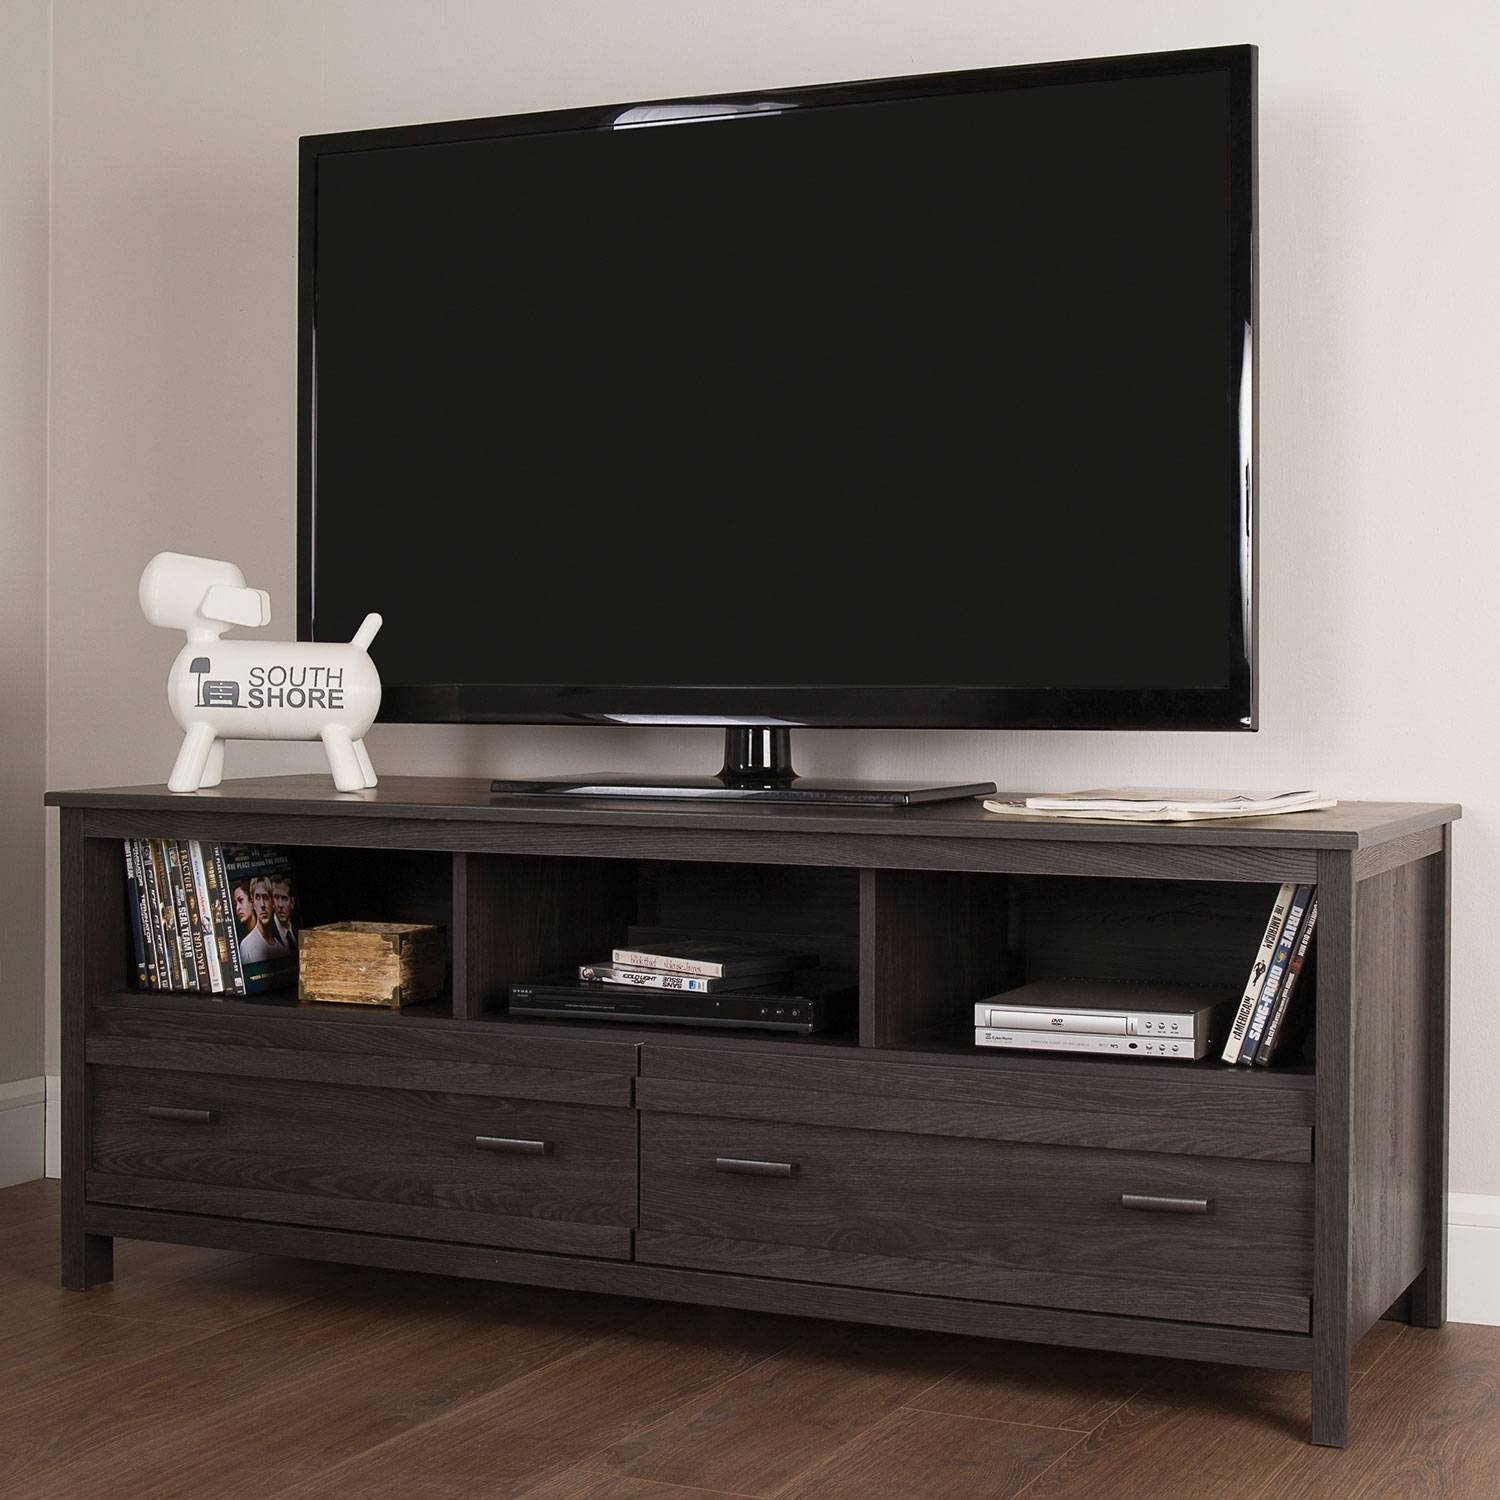 "South Shore Exhibit 60"" Tv Stand - Grey Oak : Tv Stands - Best Buy in Grey Tv Stands (Image 10 of 15)"